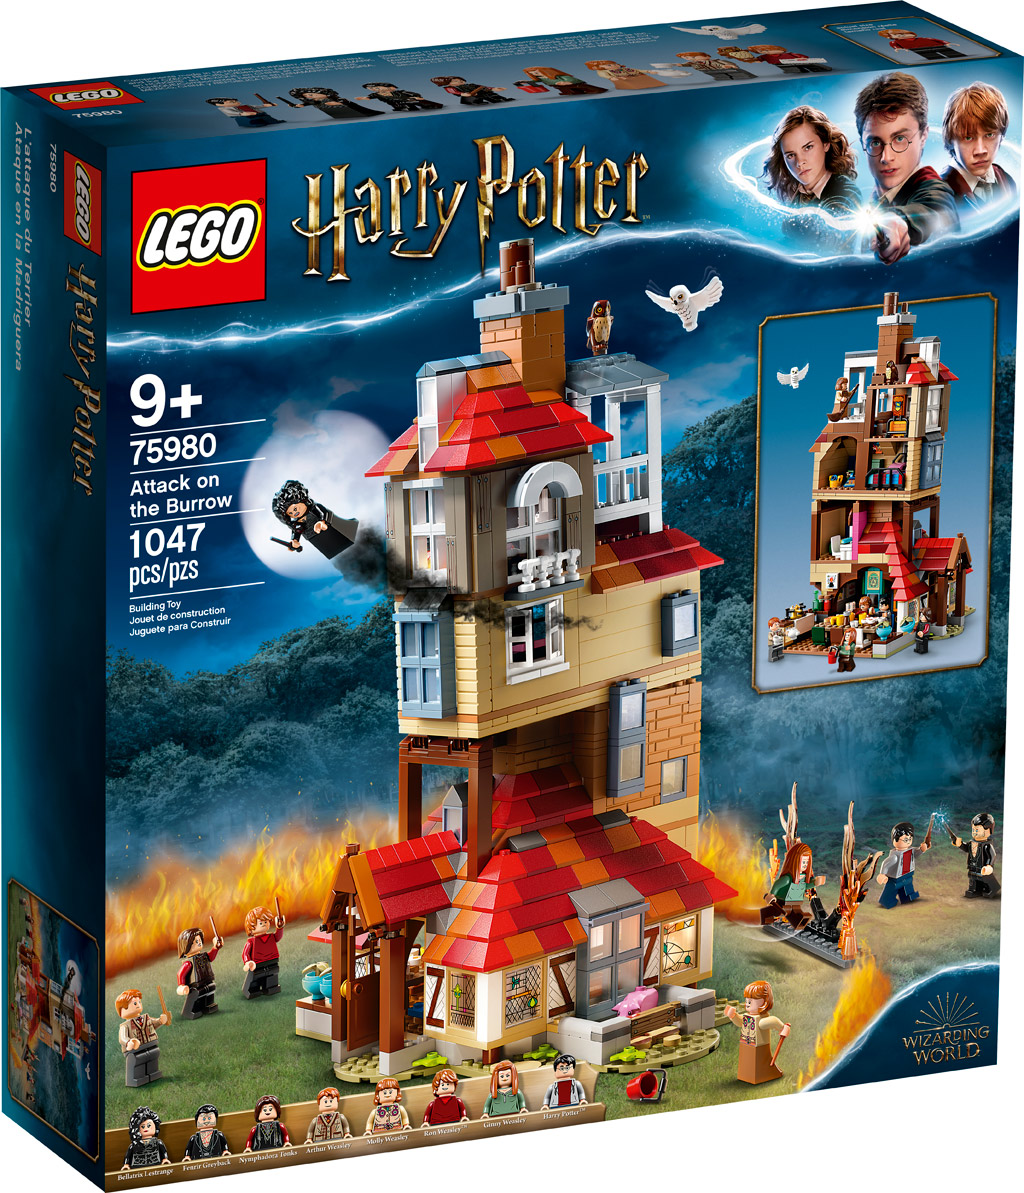 lego-harry-potter-75980-attack-on-the-burrow-2020-box zusammengebaut.com